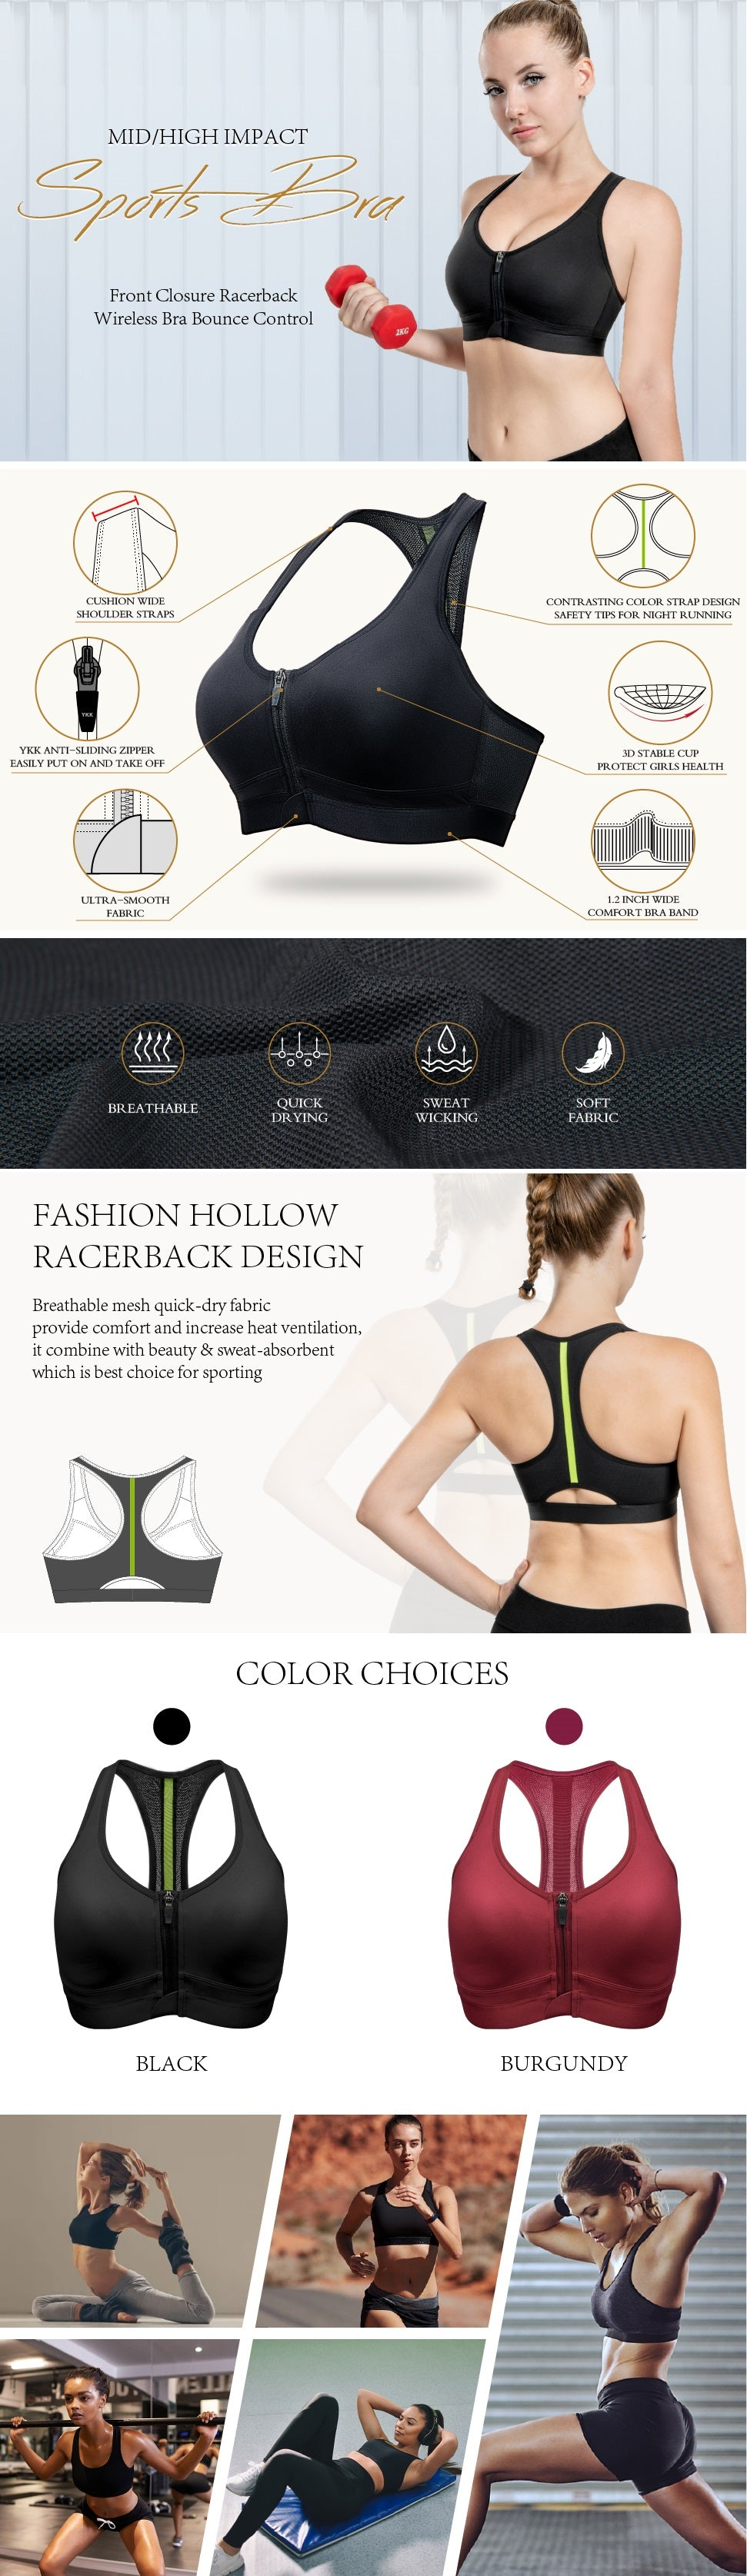 Womens Front Closure Zip Sports Bra High Impact Racerback Wirefre Bra